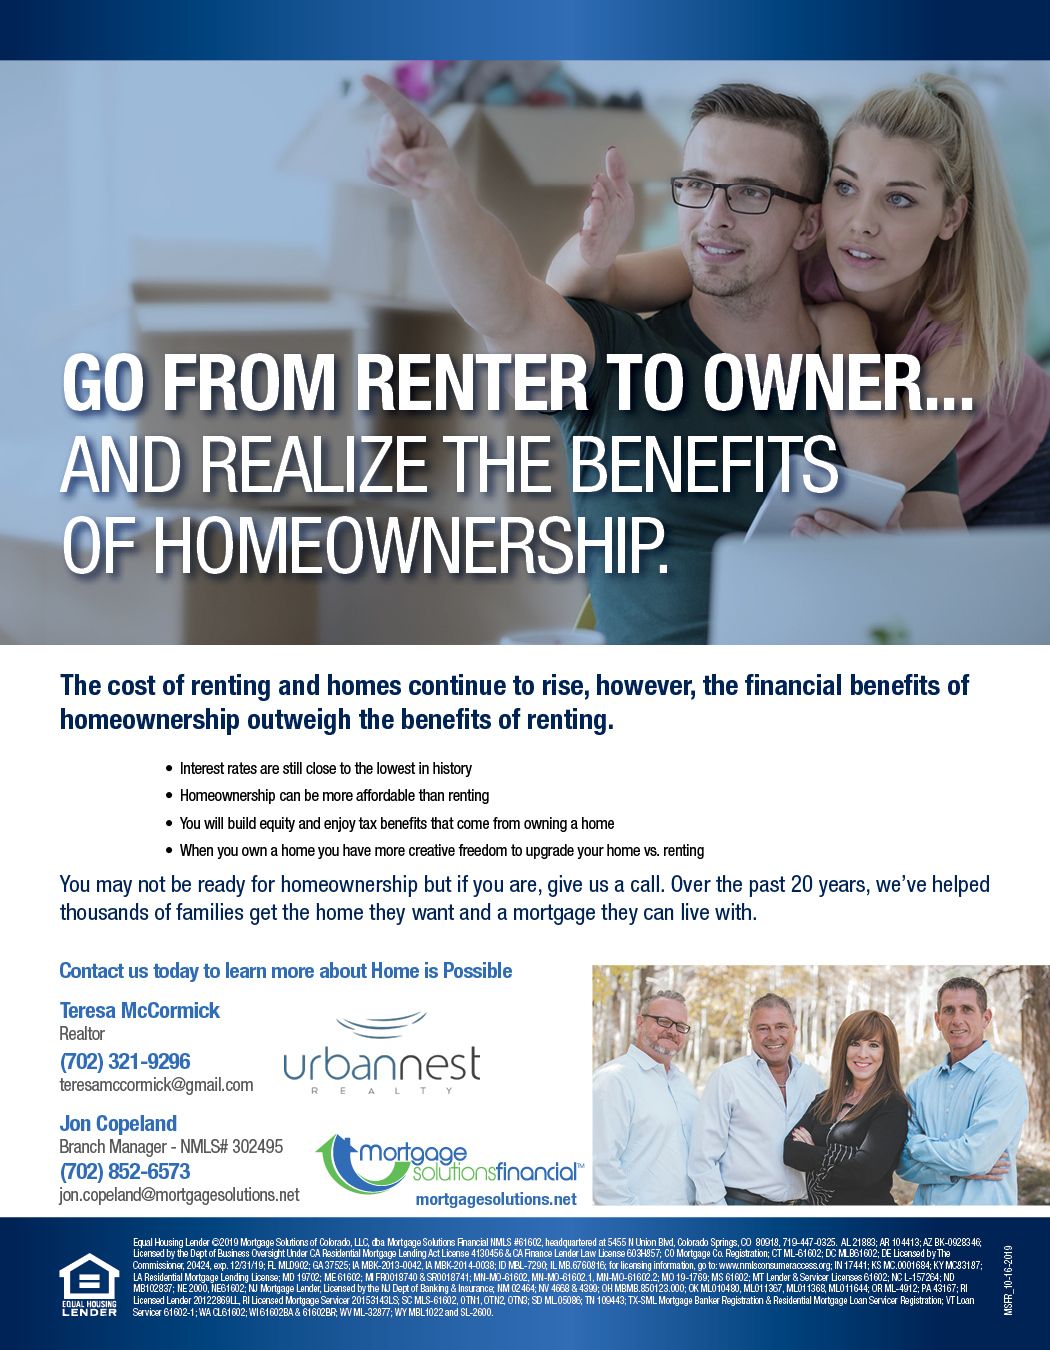 MSFR Rent V. Own_Copeland_Coop_Flyer_2019-10-16.jpg